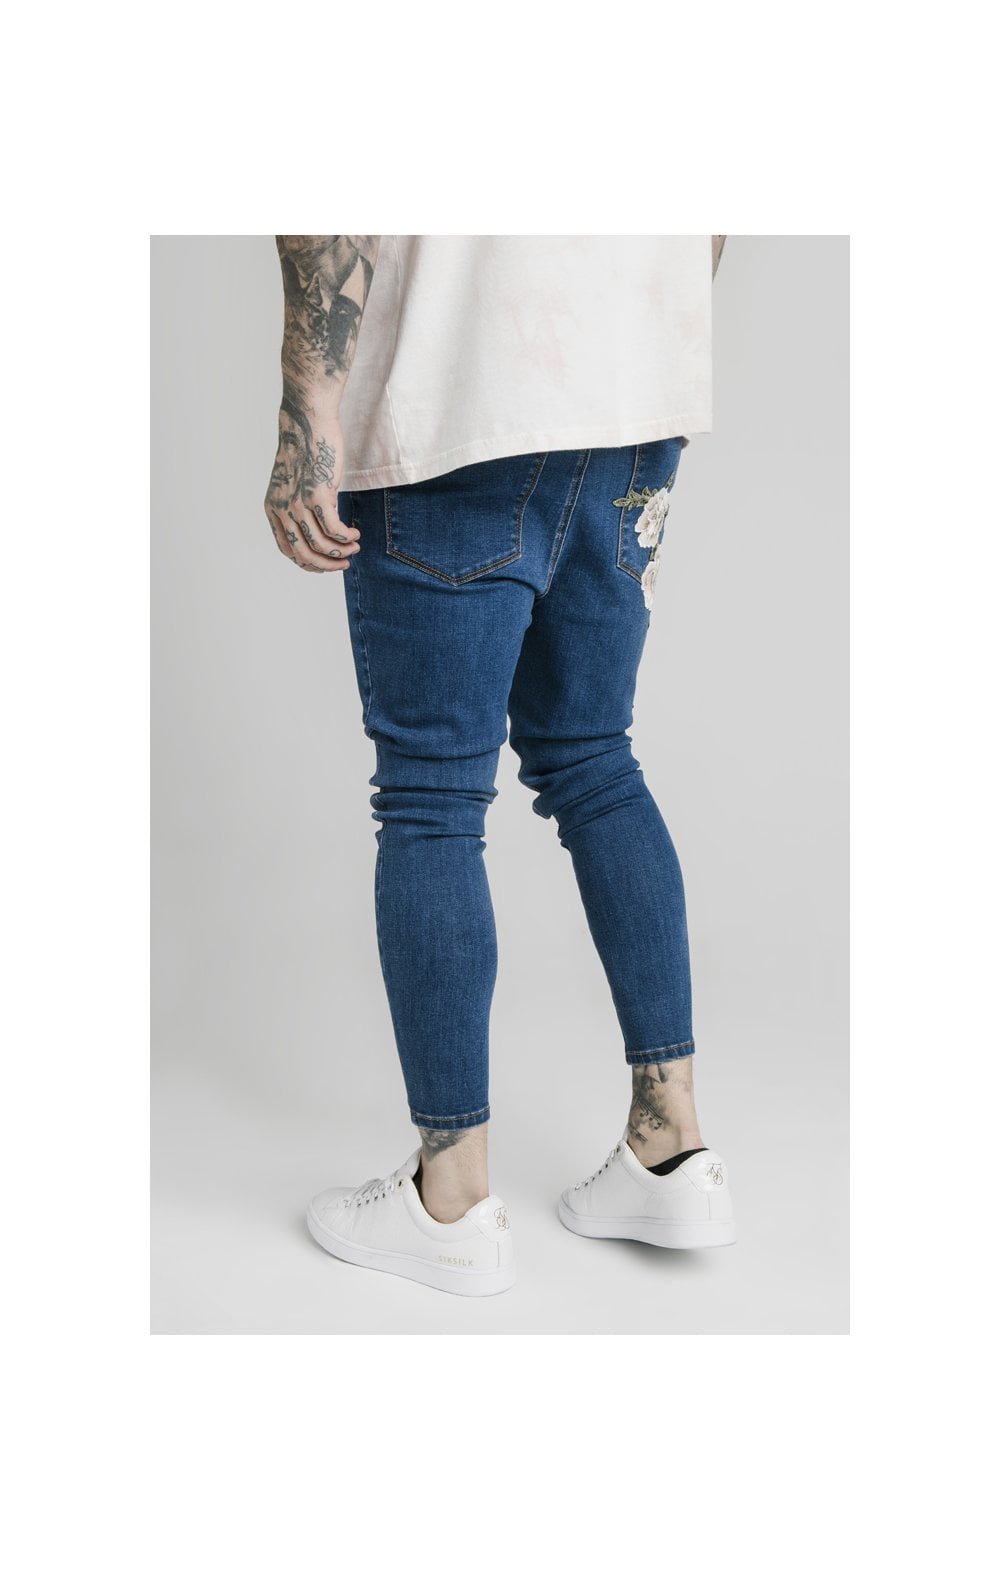 Load image into Gallery viewer, SikSilk Drop Crotch Pleated Appliqu Denims - Midstone (2)